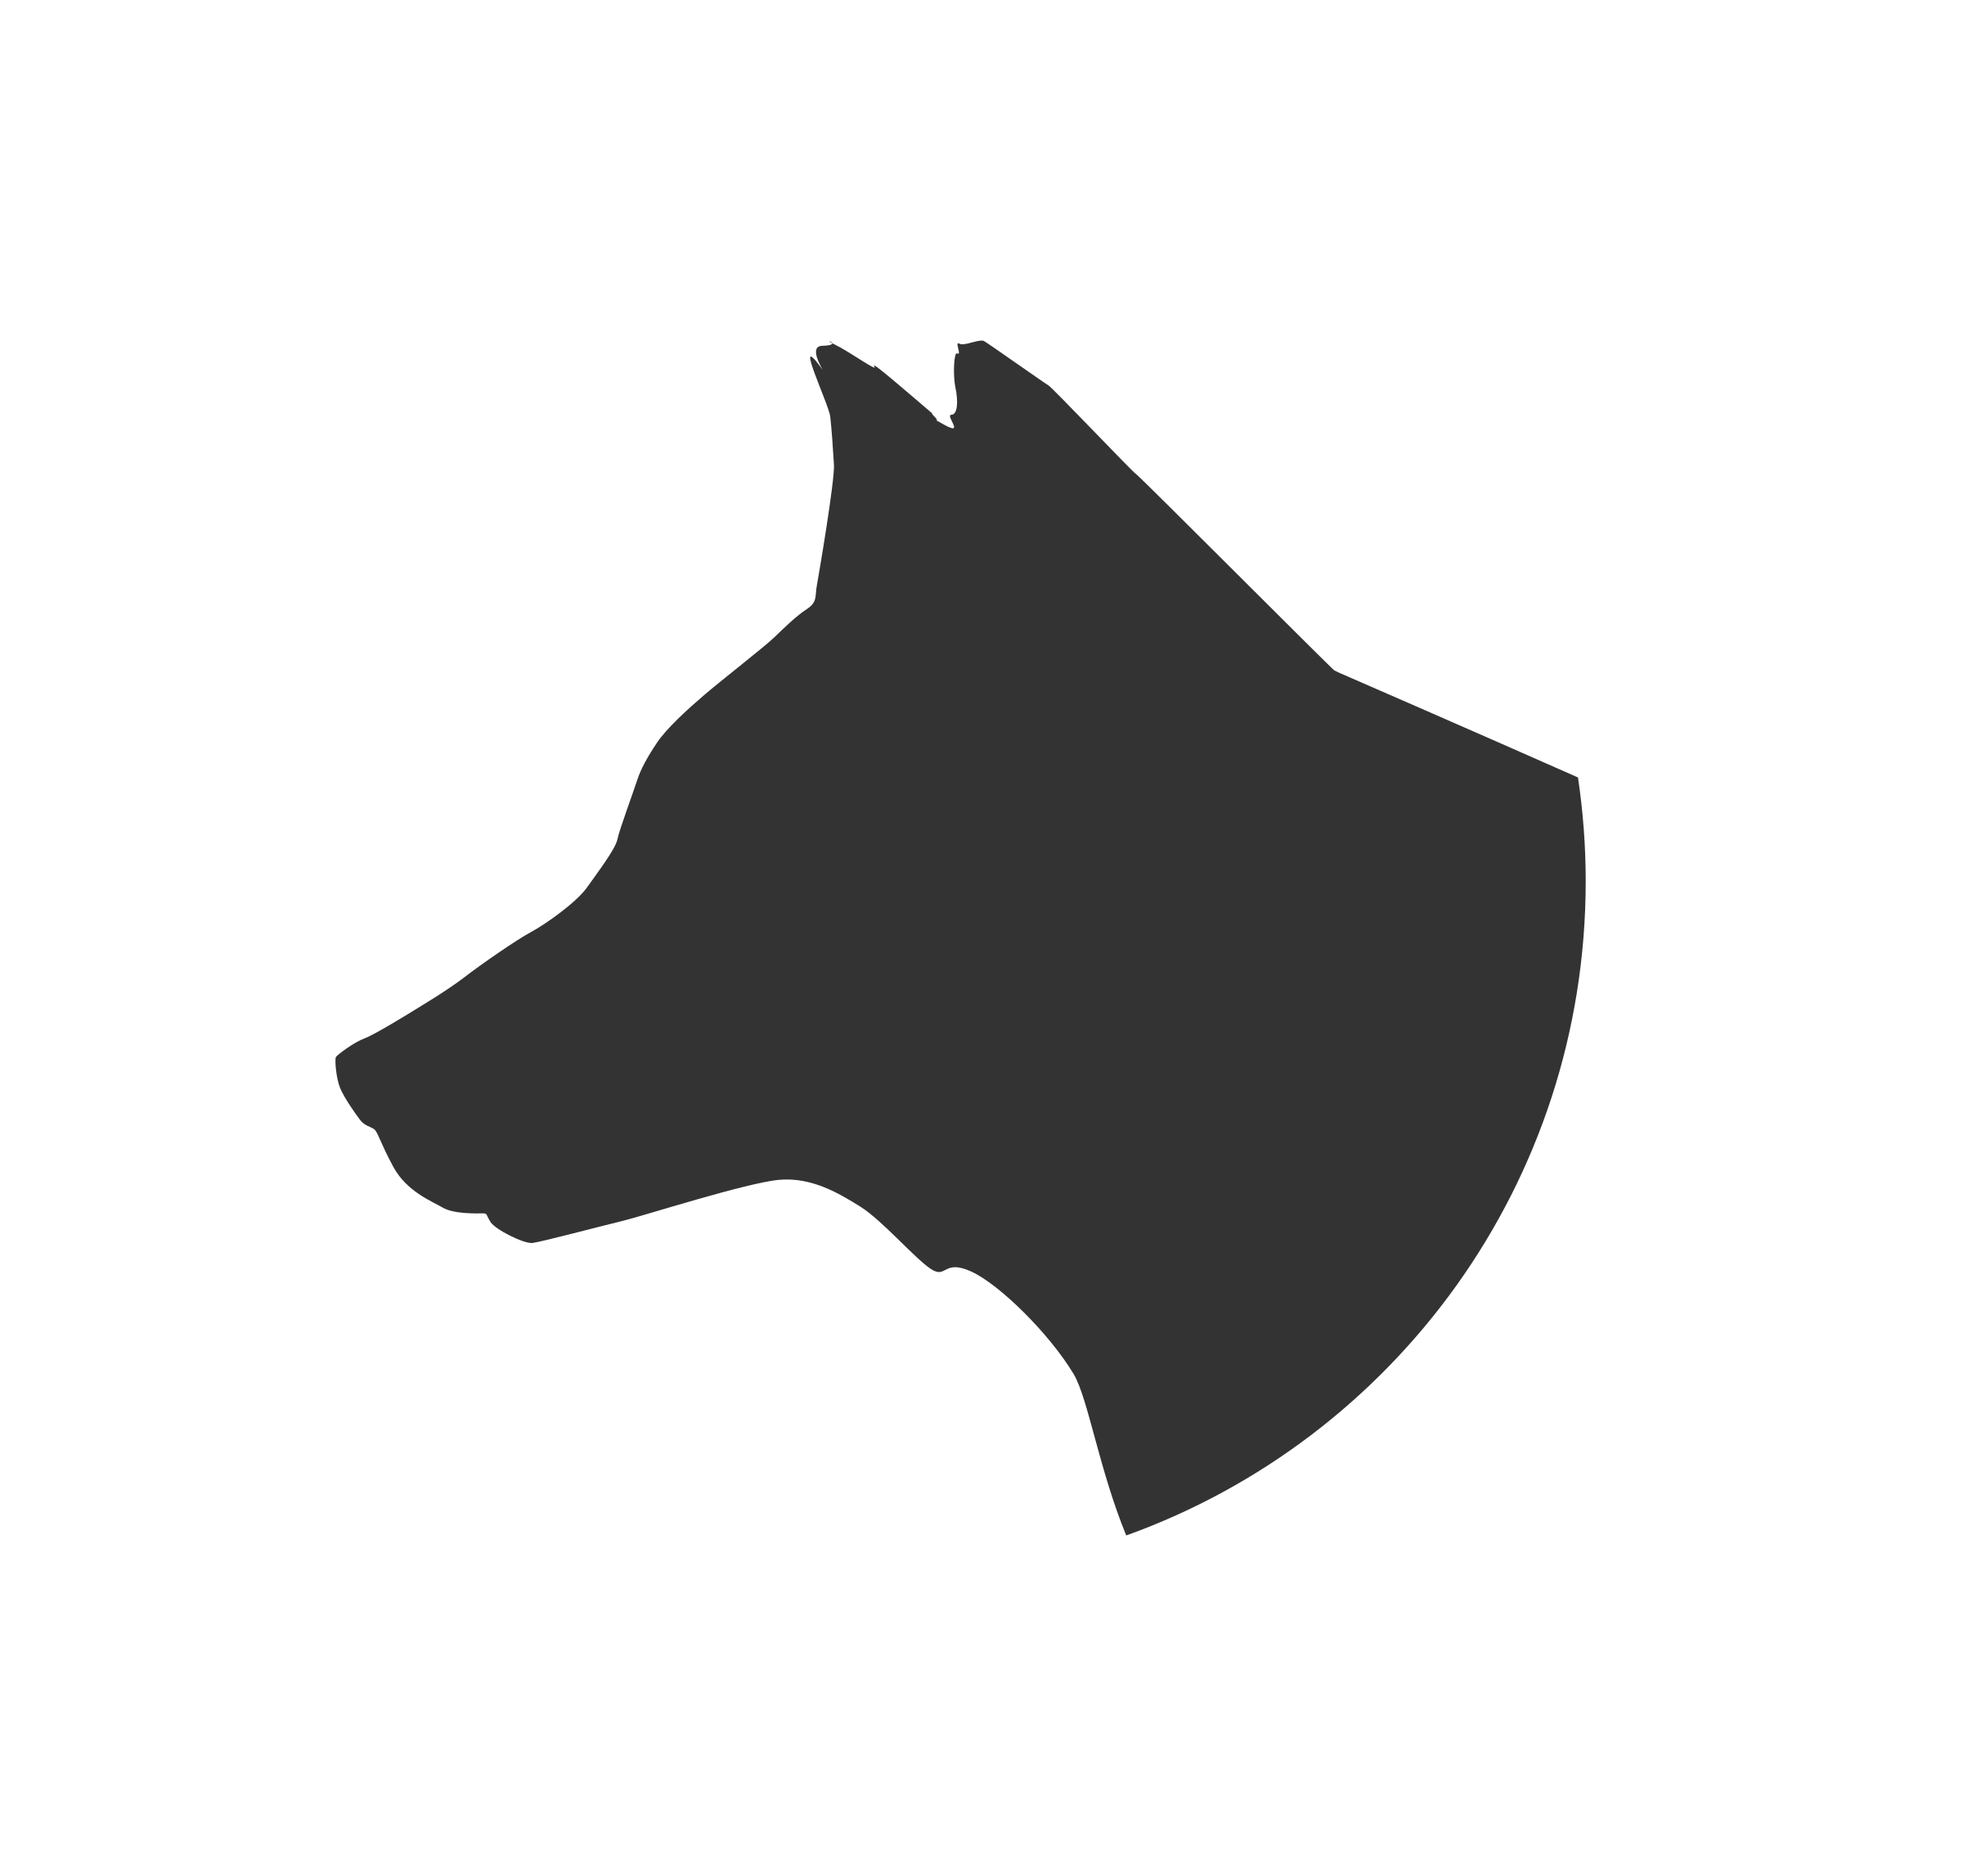 Dog profile silhouette at. Dogs clipart head